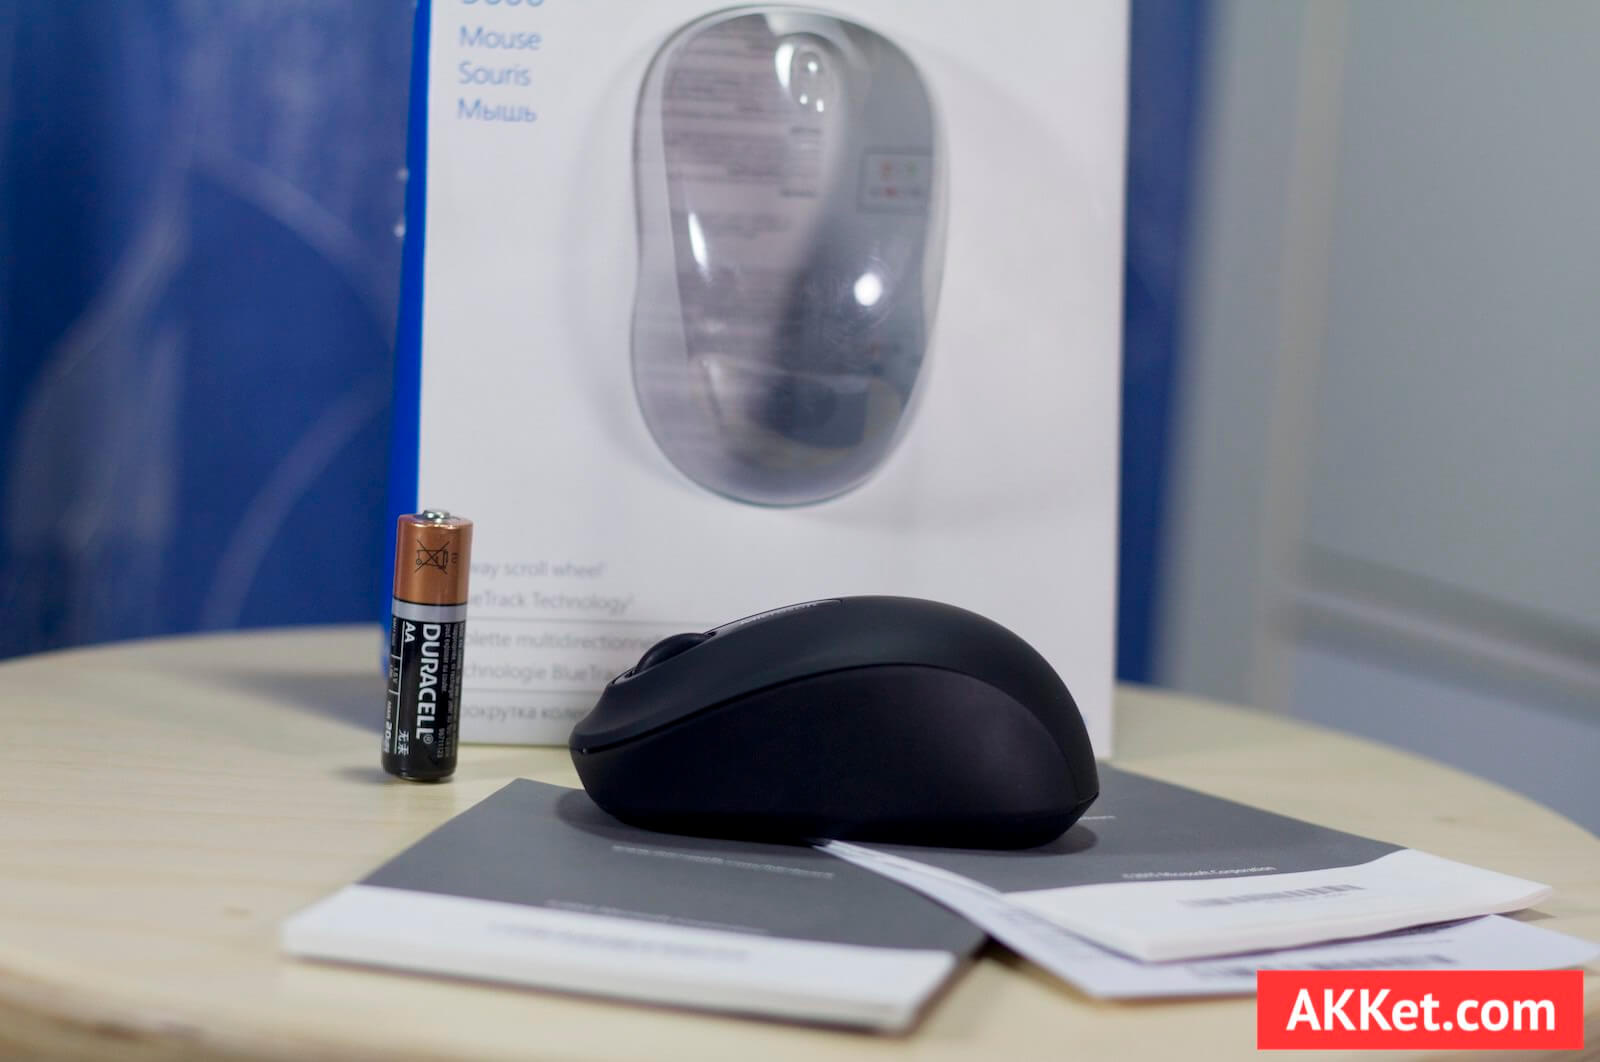 Microsoft Bluetooth Mobile Mouse 3600 review mouse 3